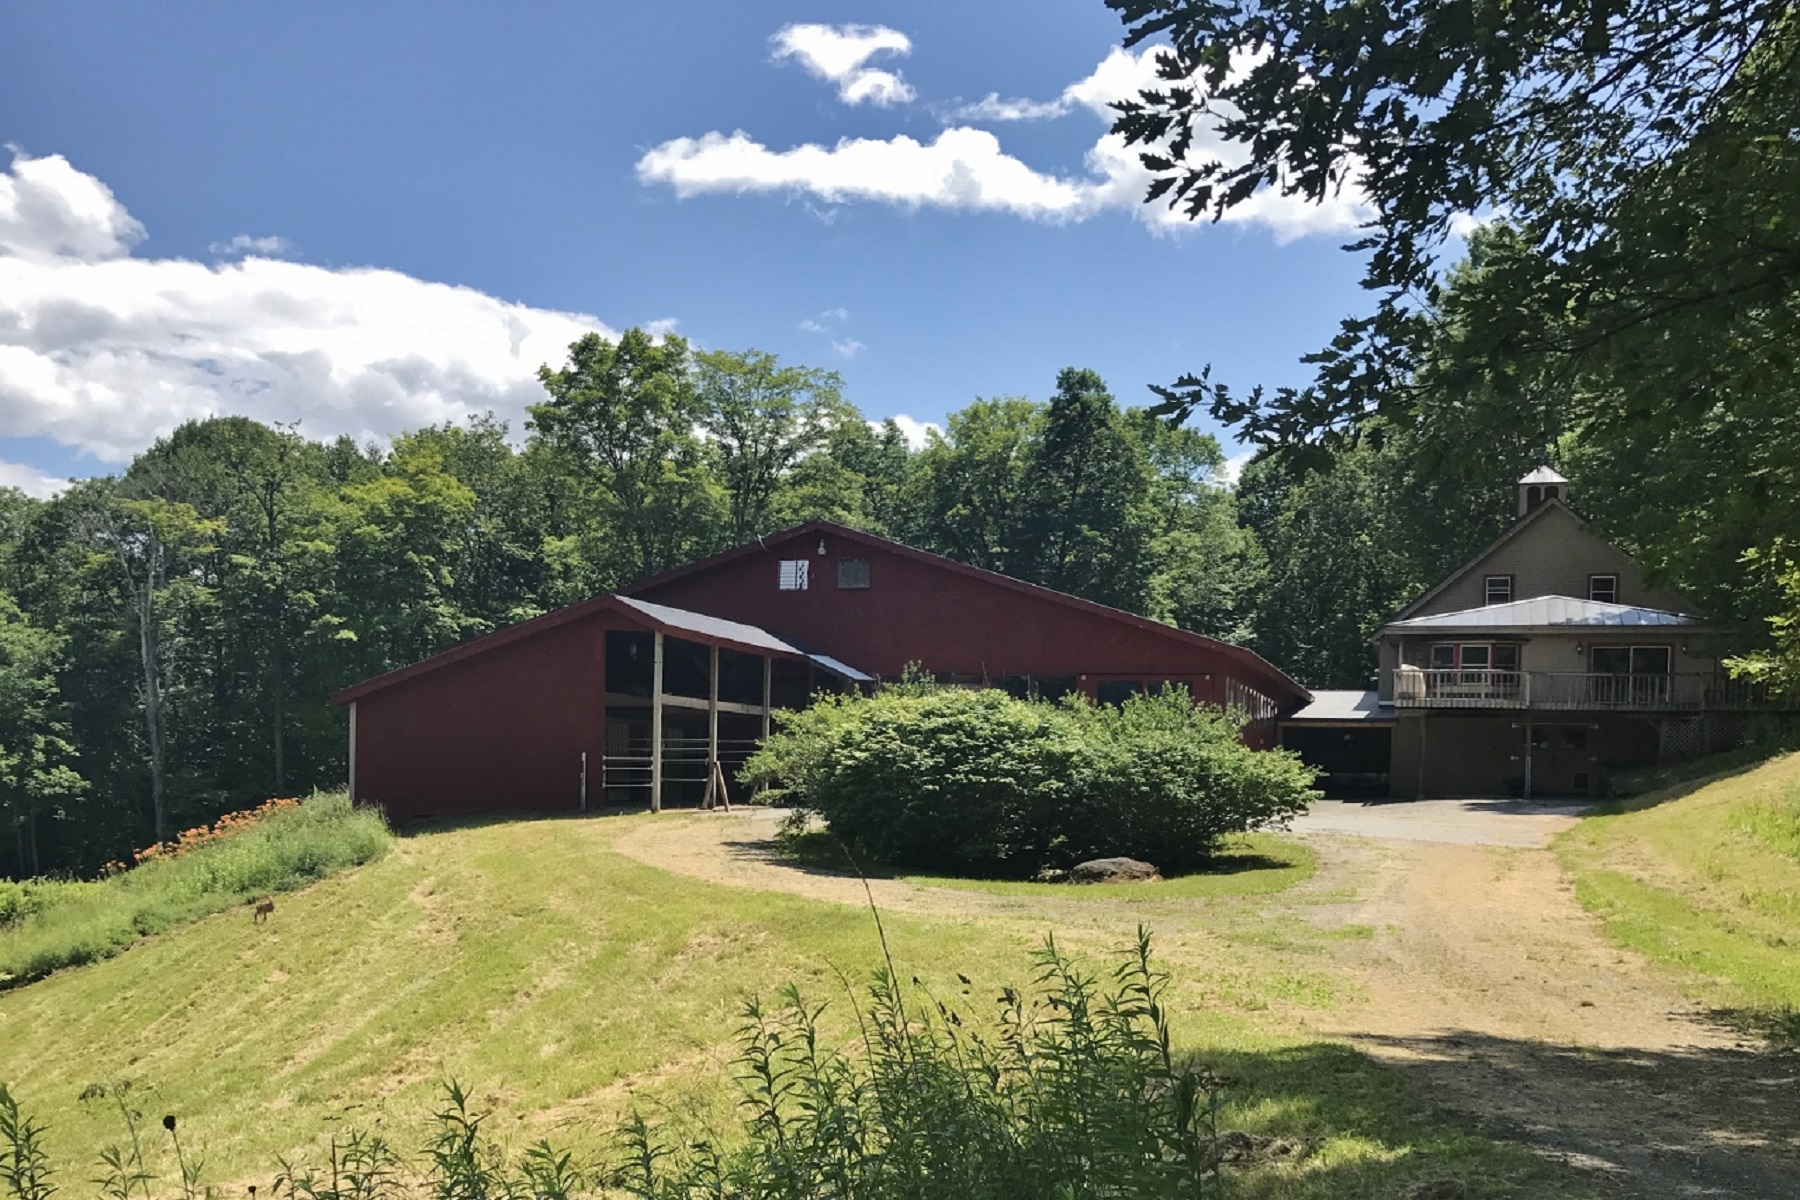 Single Family Homes for Sale at Complete Equestrian Facility 8 Garvin Hill Road Hartland, Vermont 05048 United States